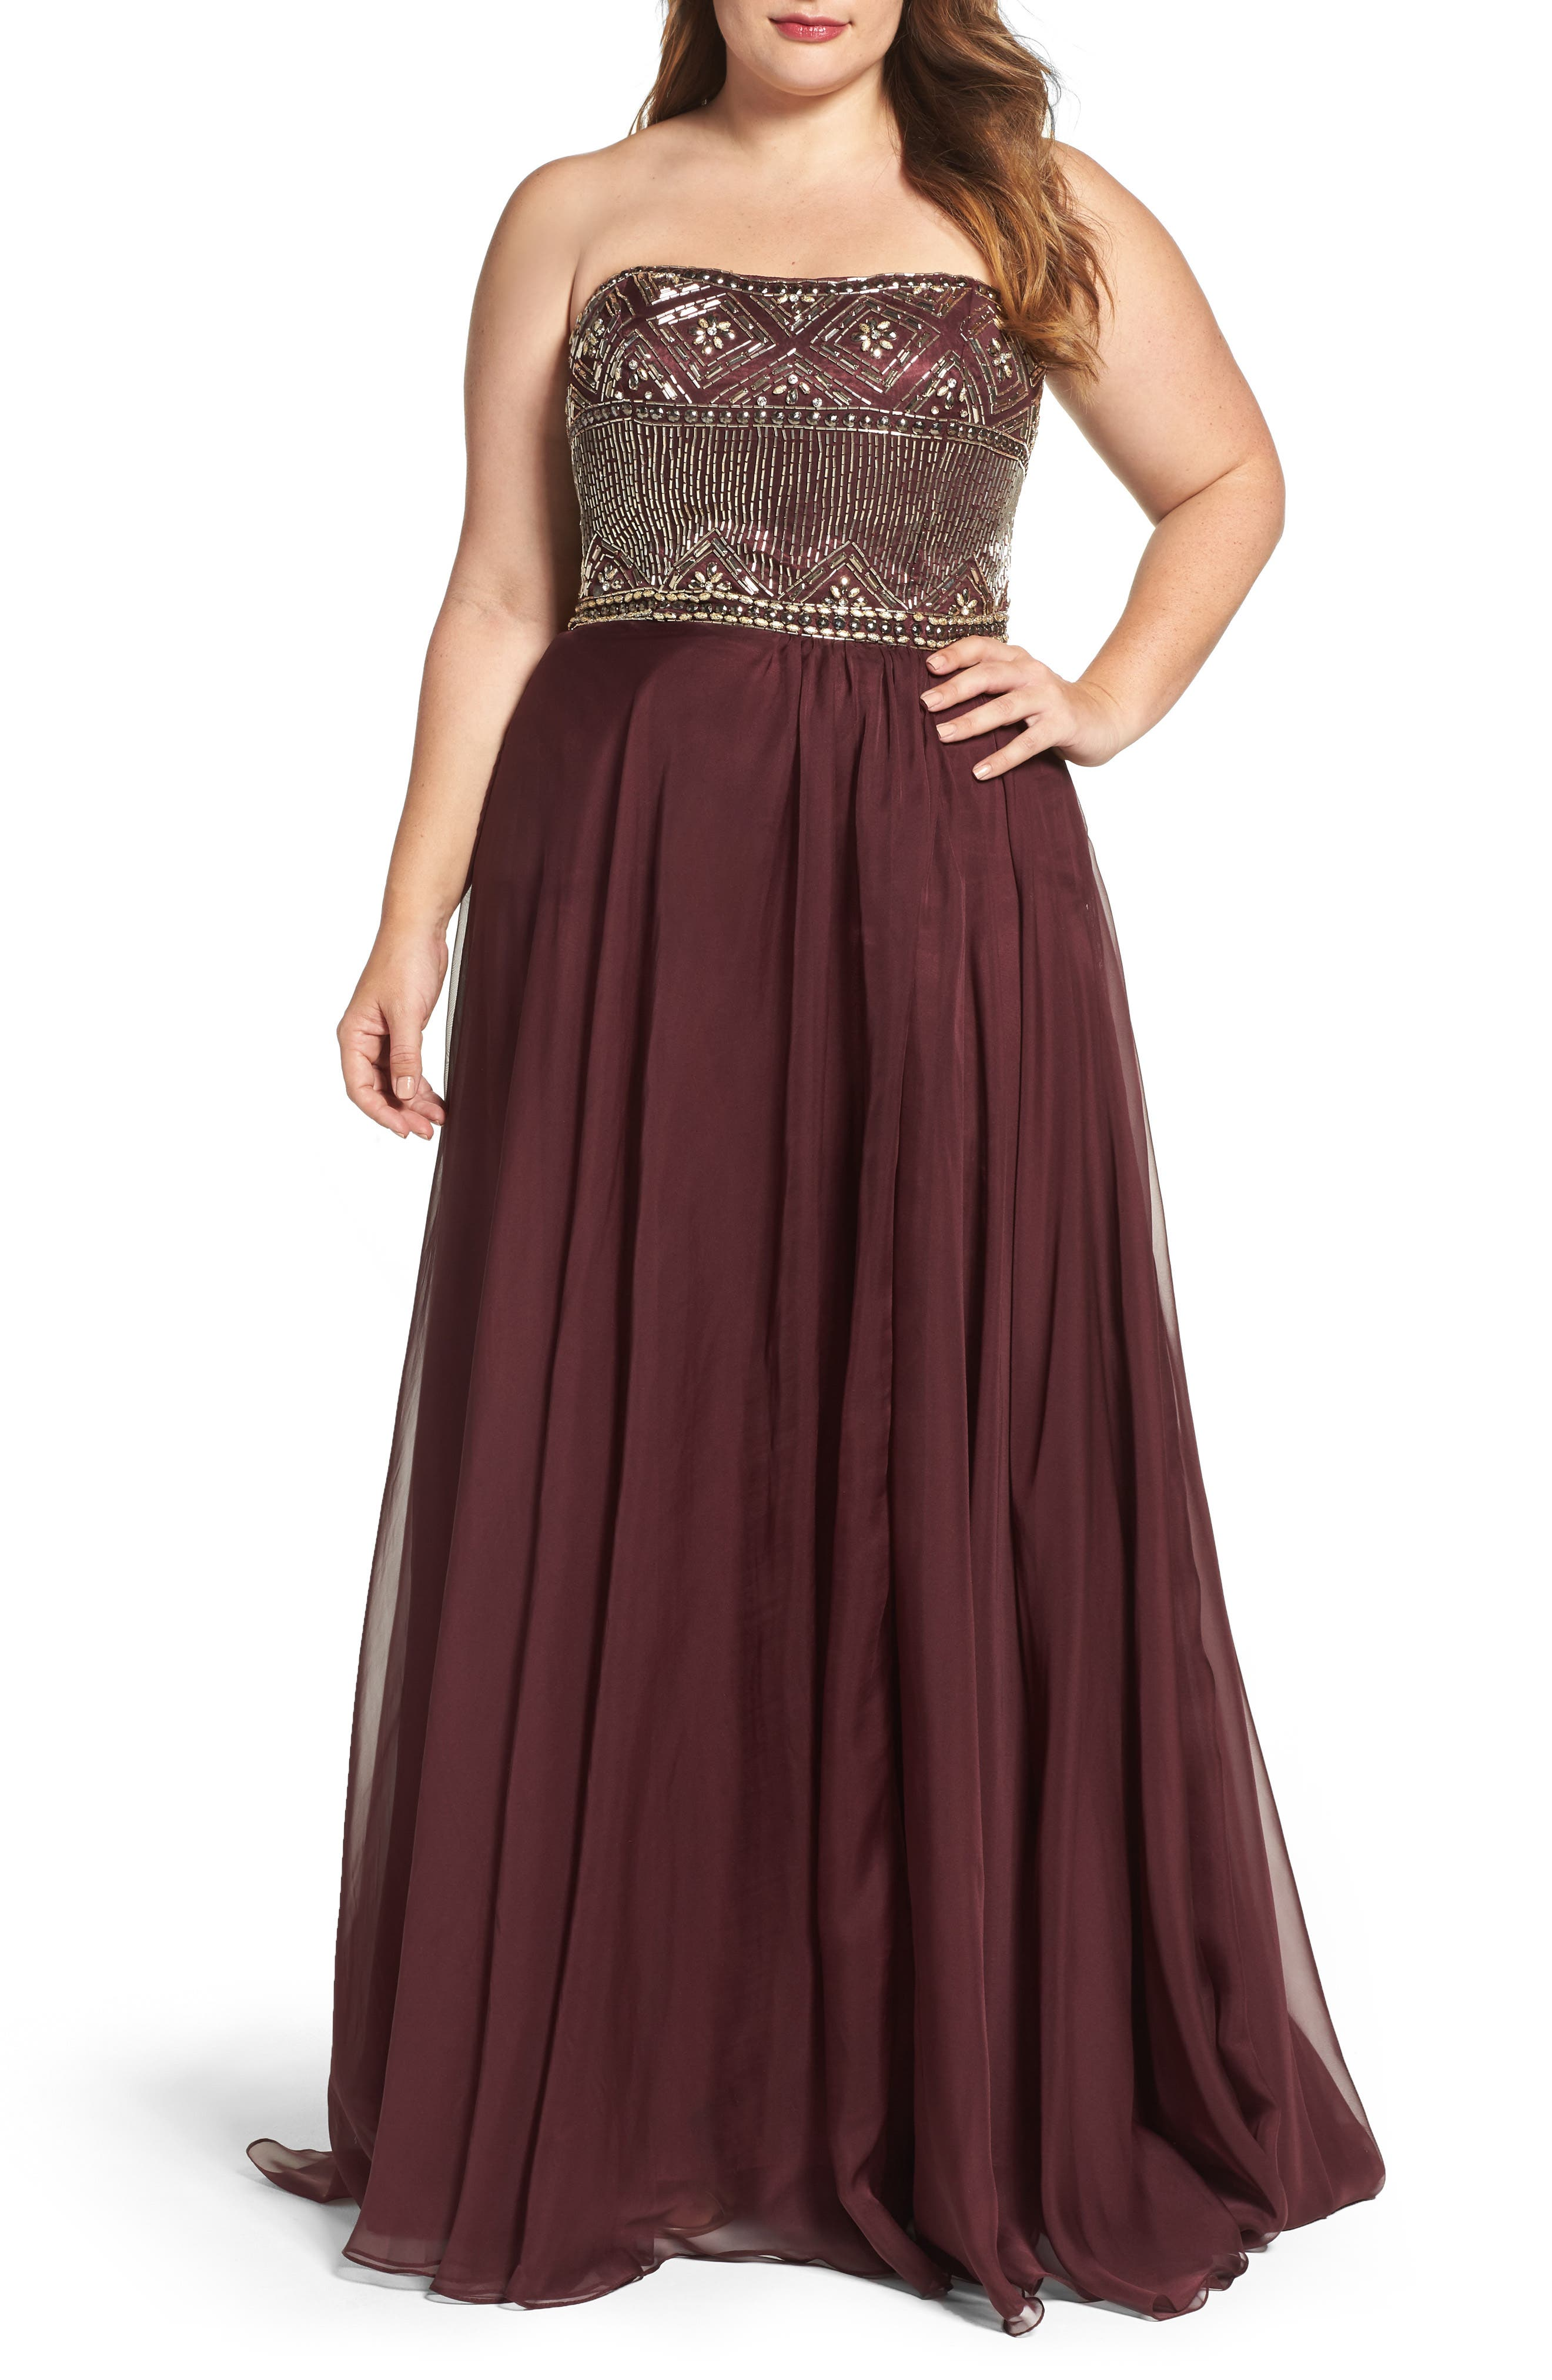 Alternate Image 1 Selected - Mac Duggal Beaded Bodice Strapless Chiffon Gown (Plus Size)